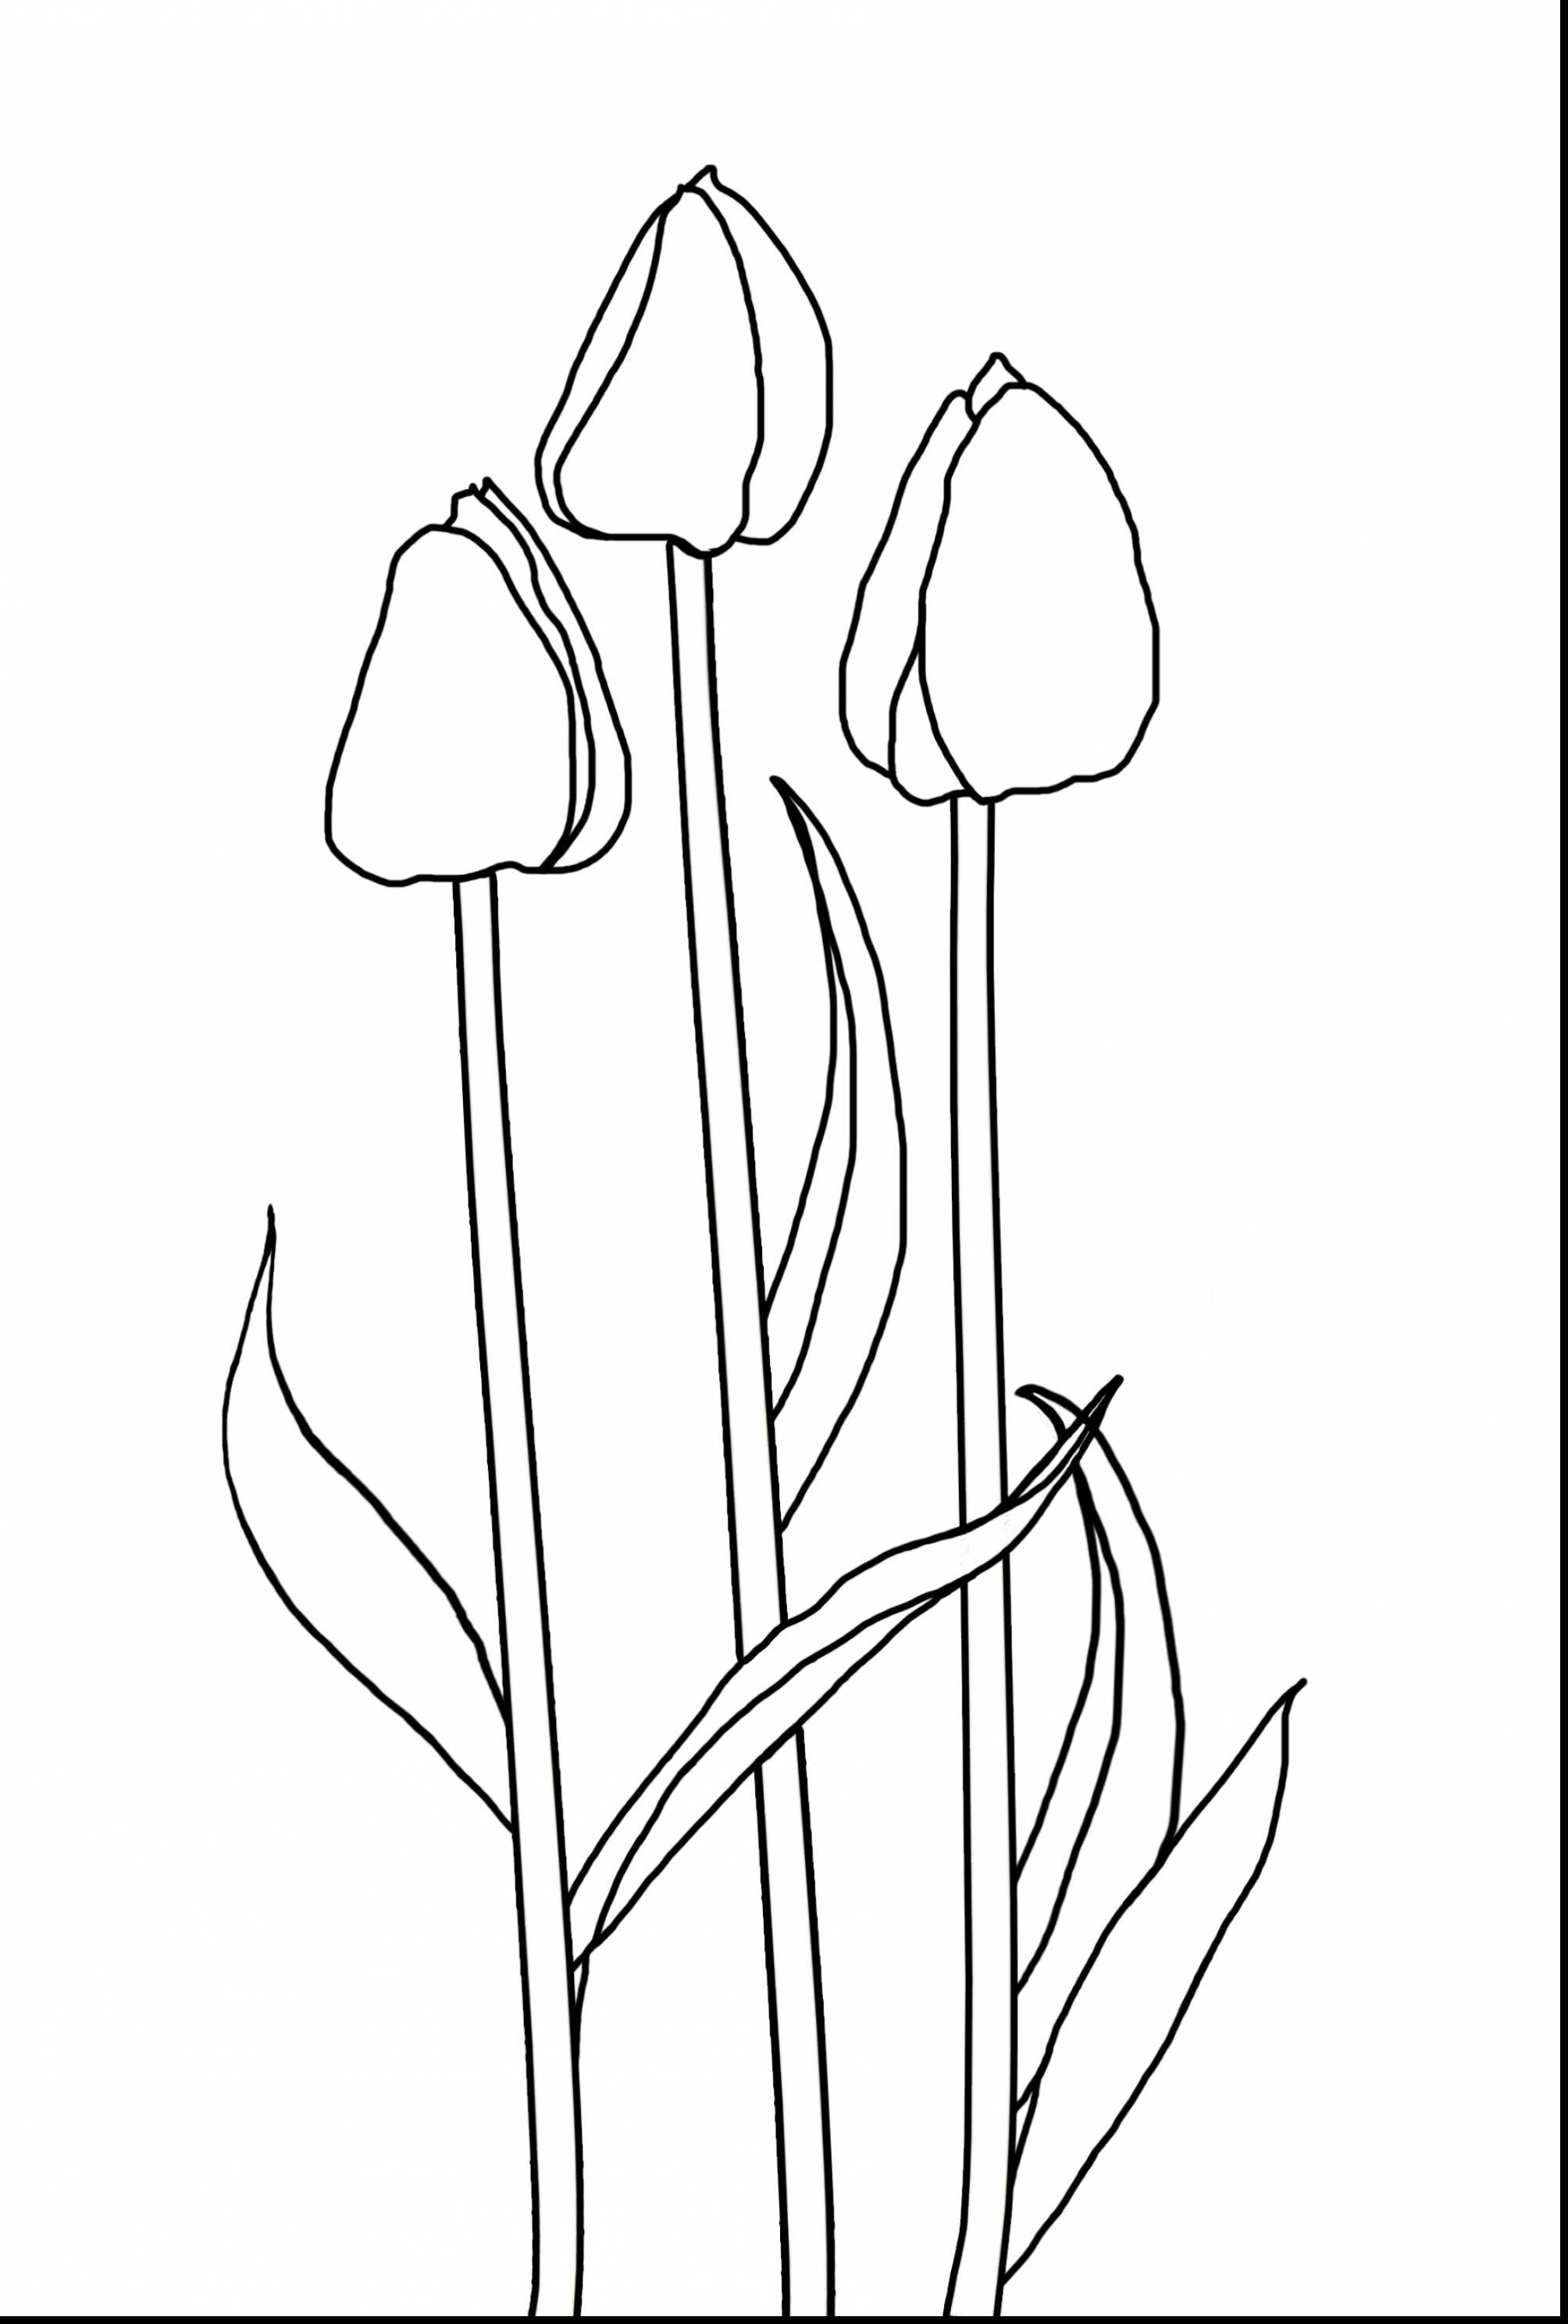 tulip coloring pictures tulip flower coloring pages at getdrawings free download pictures coloring tulip